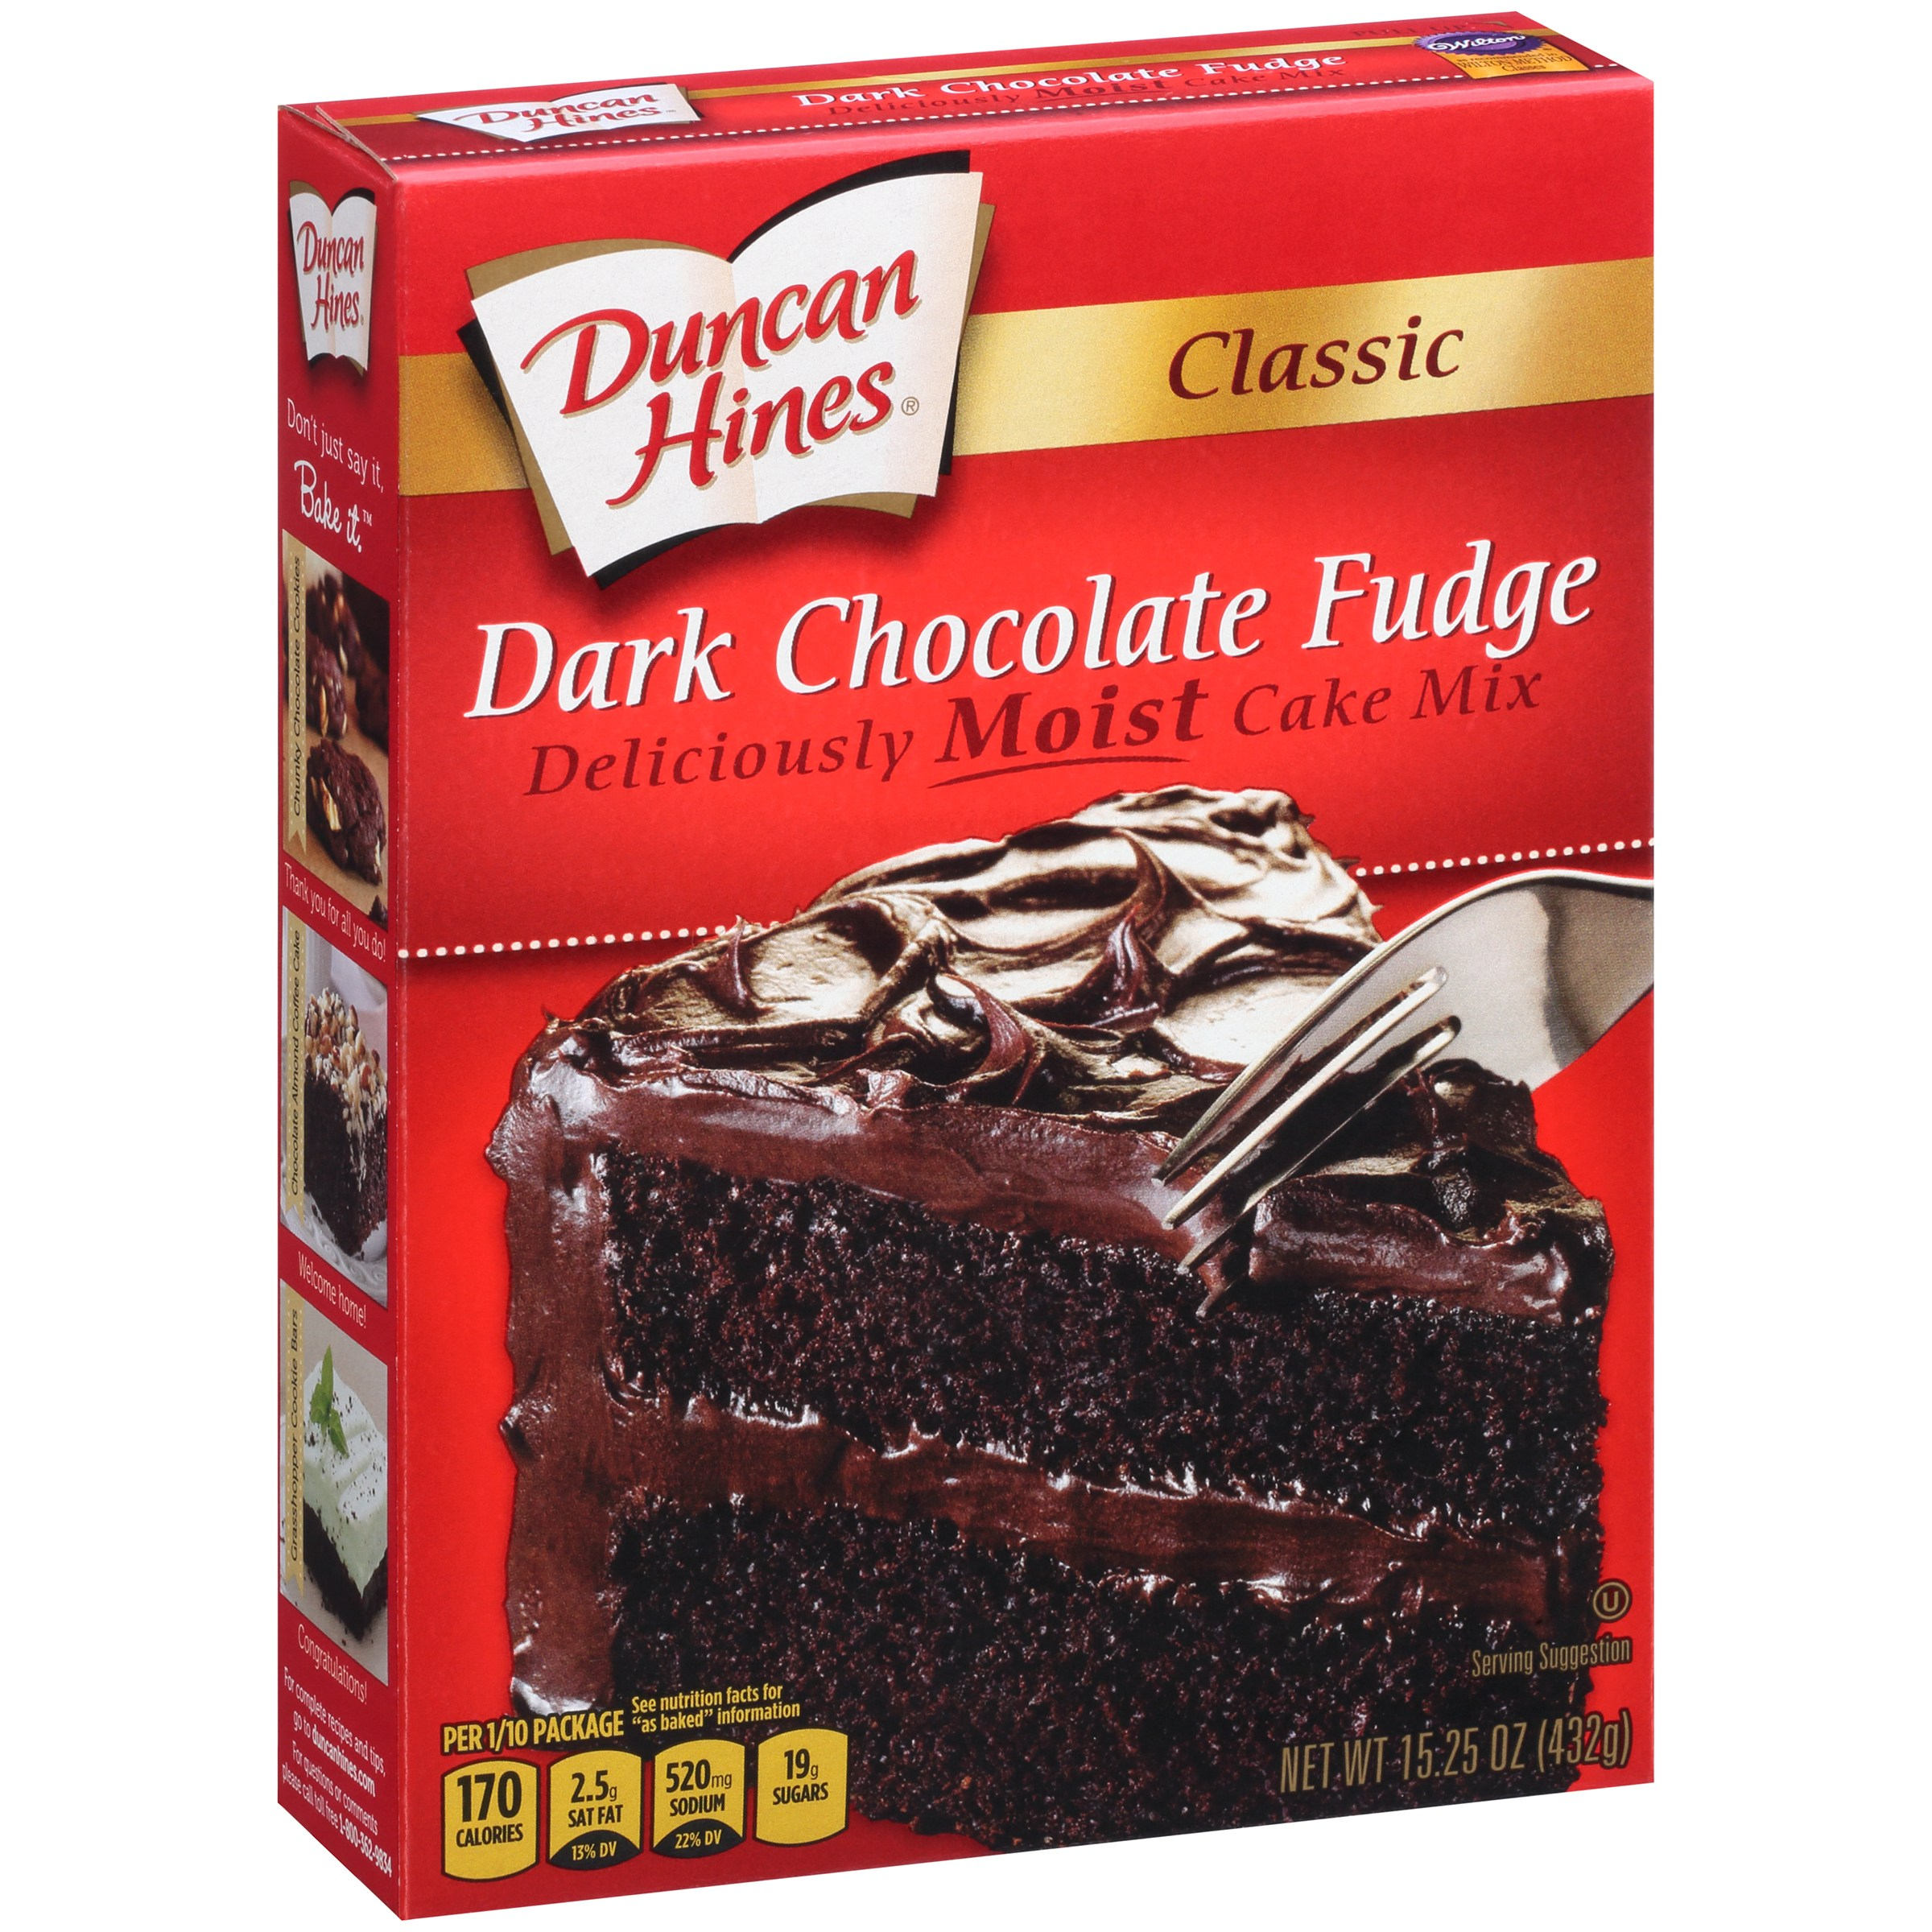 Duncan Hines Classic Dark Chocolate Fudge Cake Mix, 15.25 oz by Pinnacle Foods Group LLC.